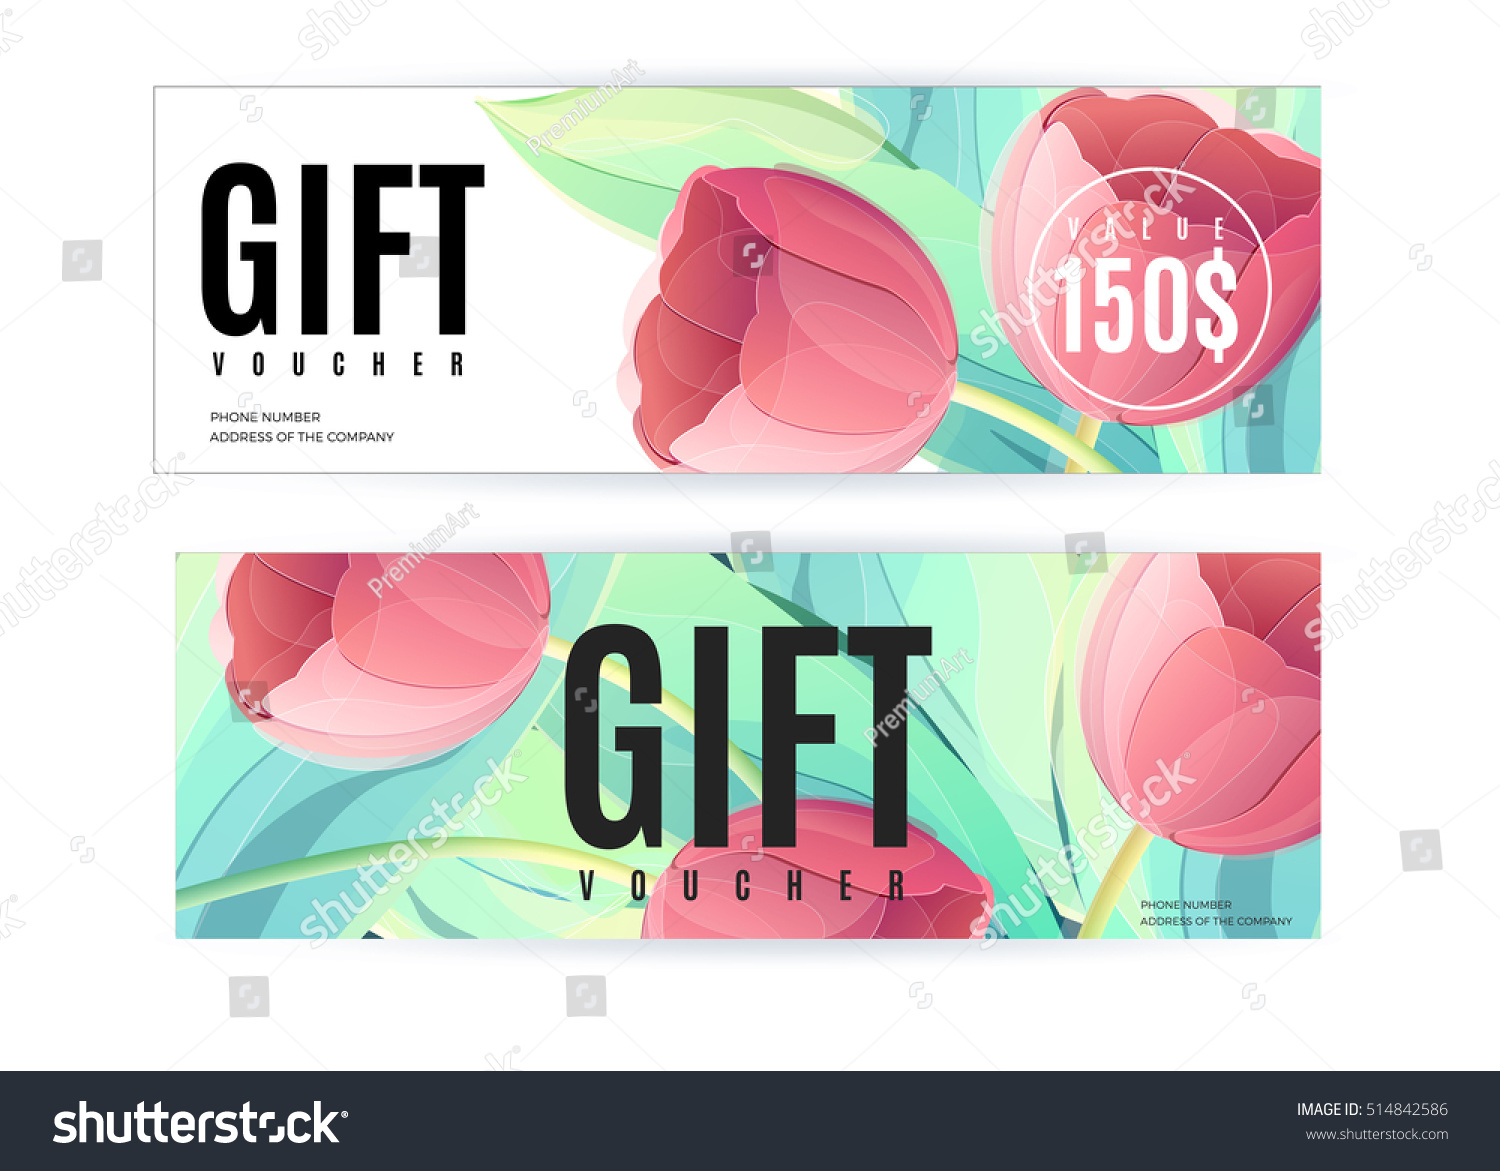 Vector gift voucher template tulip flowers stock vector 514842586 vector gift voucher template with tulip flowers business floral card abstract background concept yadclub Image collections